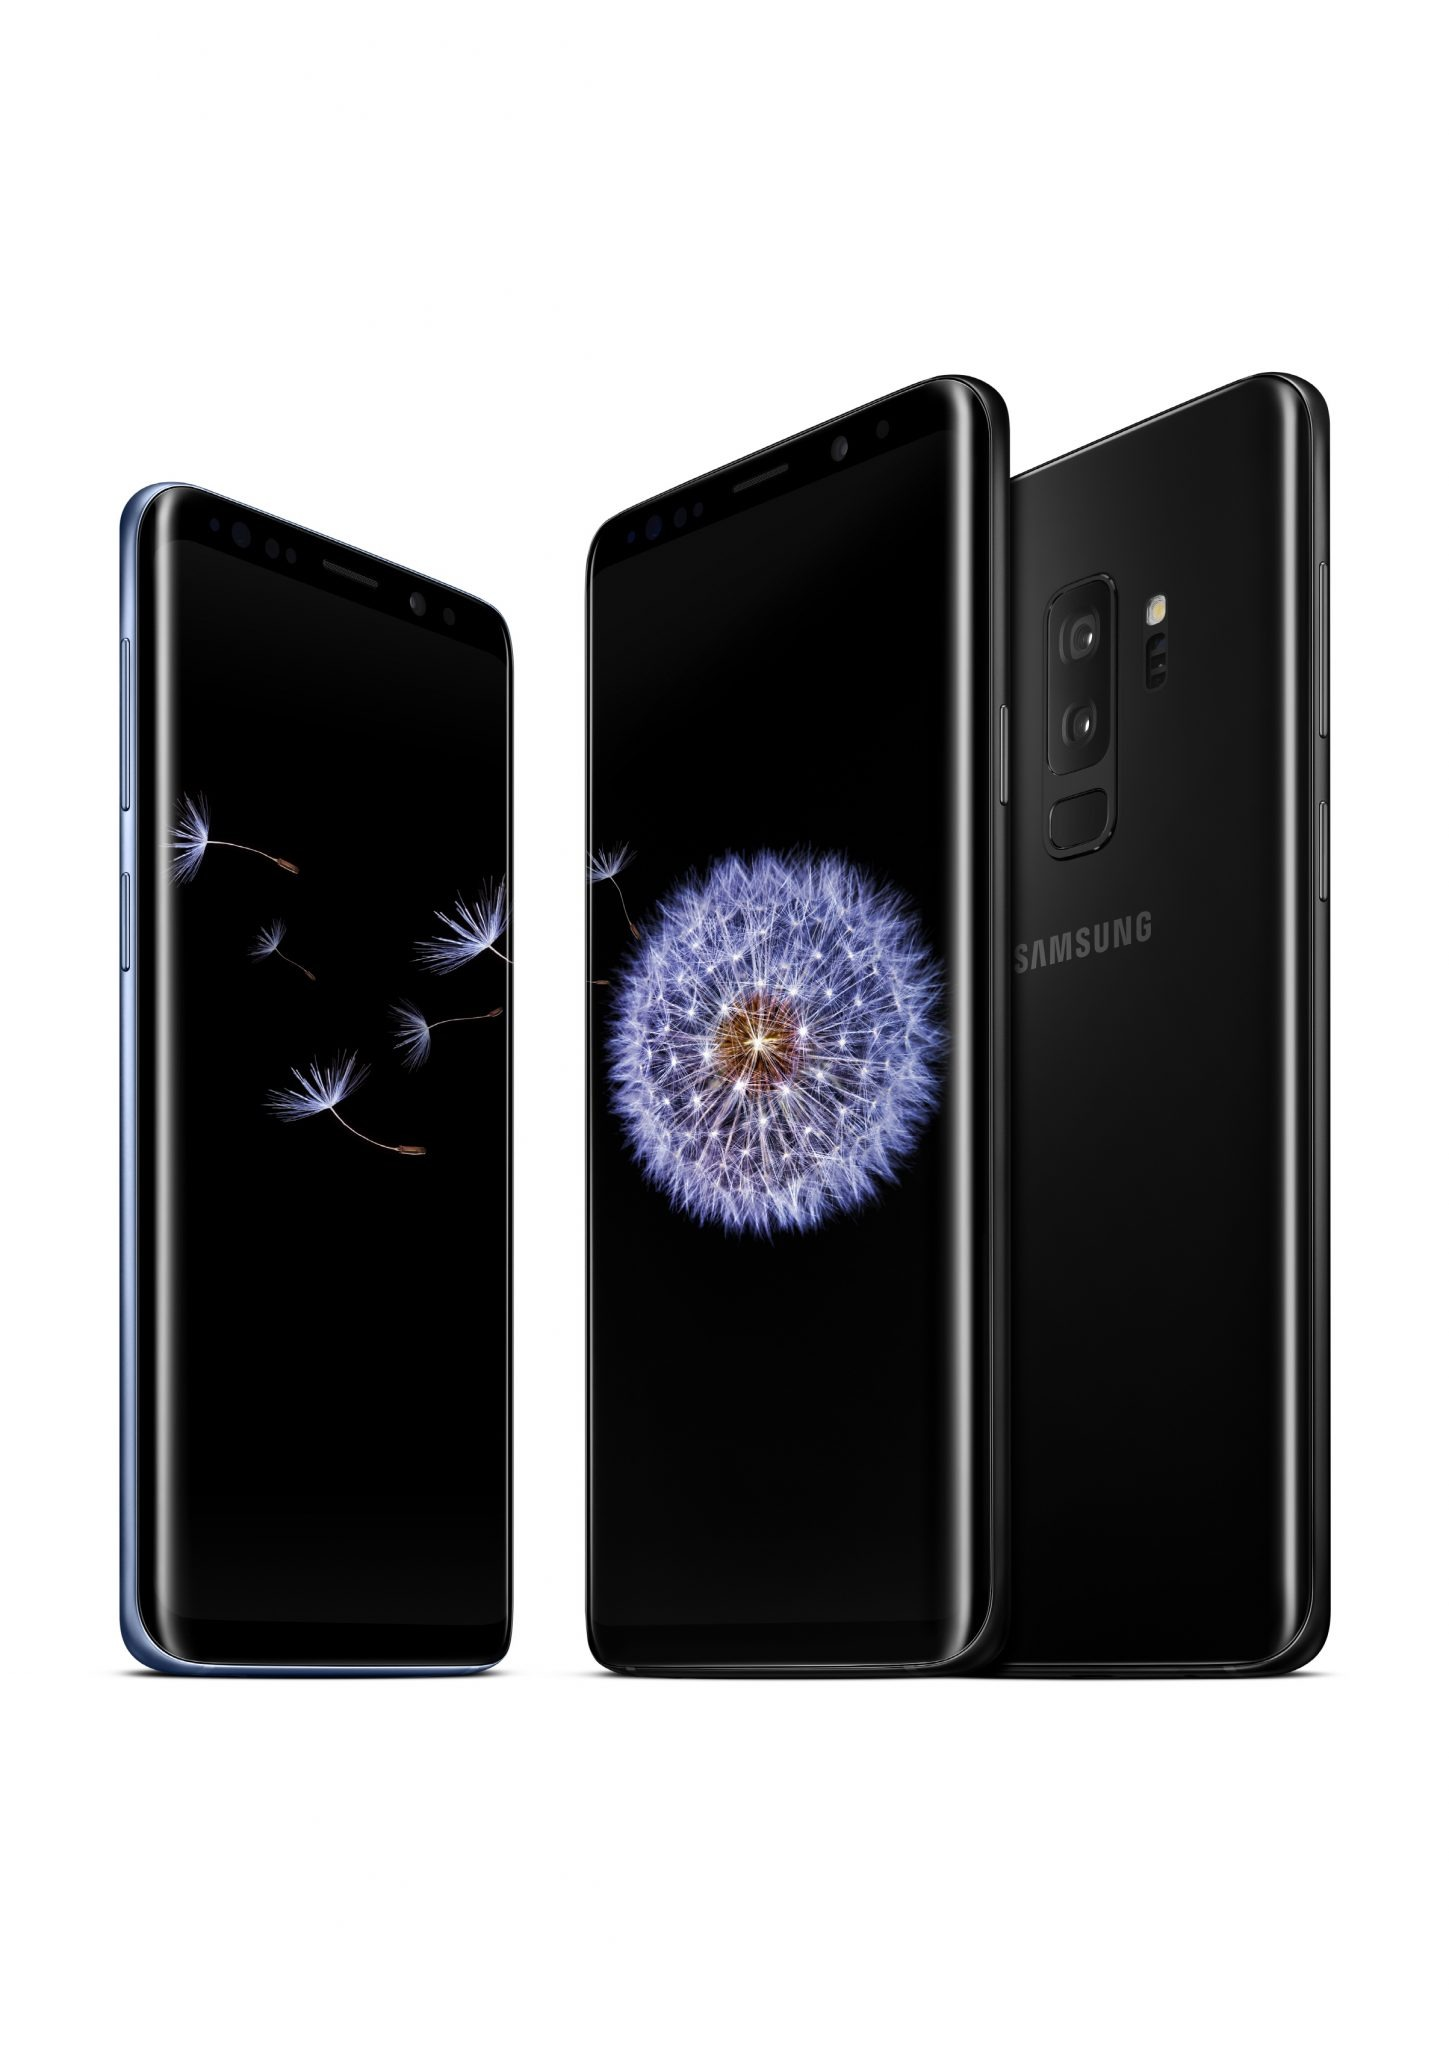 Samsung Galaxy S9 and Galaxy S9+